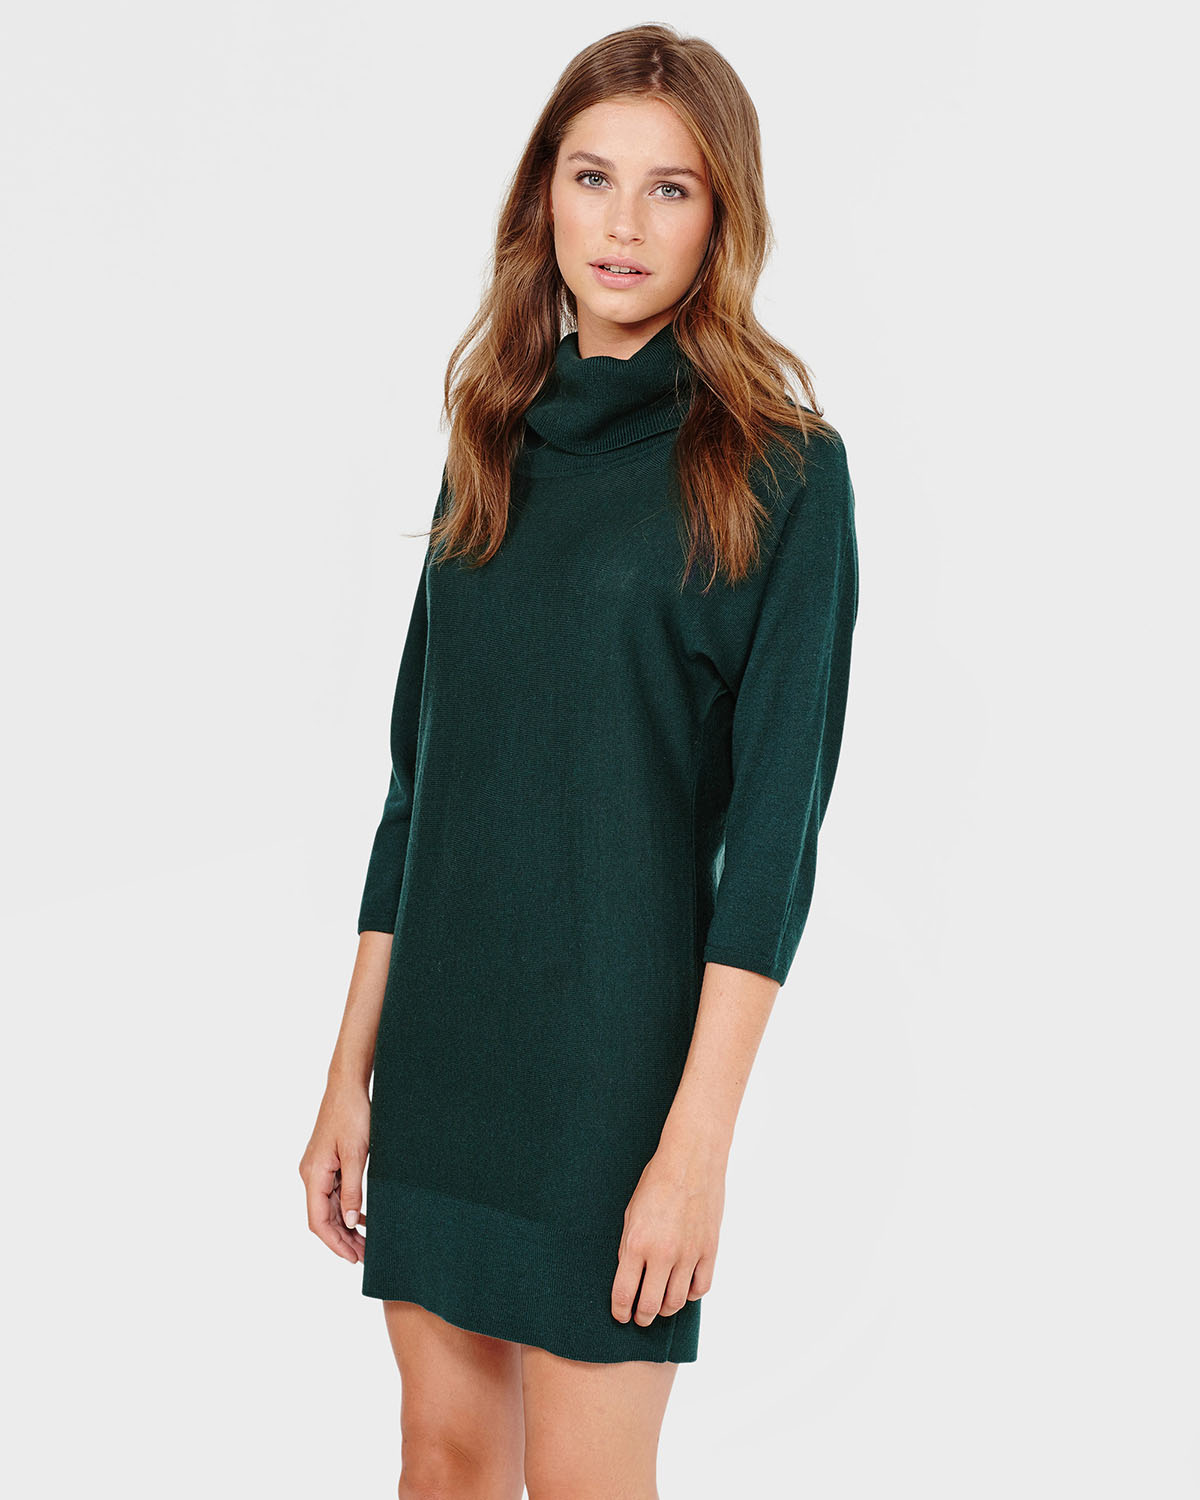 ROBE PULL-OVER FEMME | 78886575 - WE Fashion